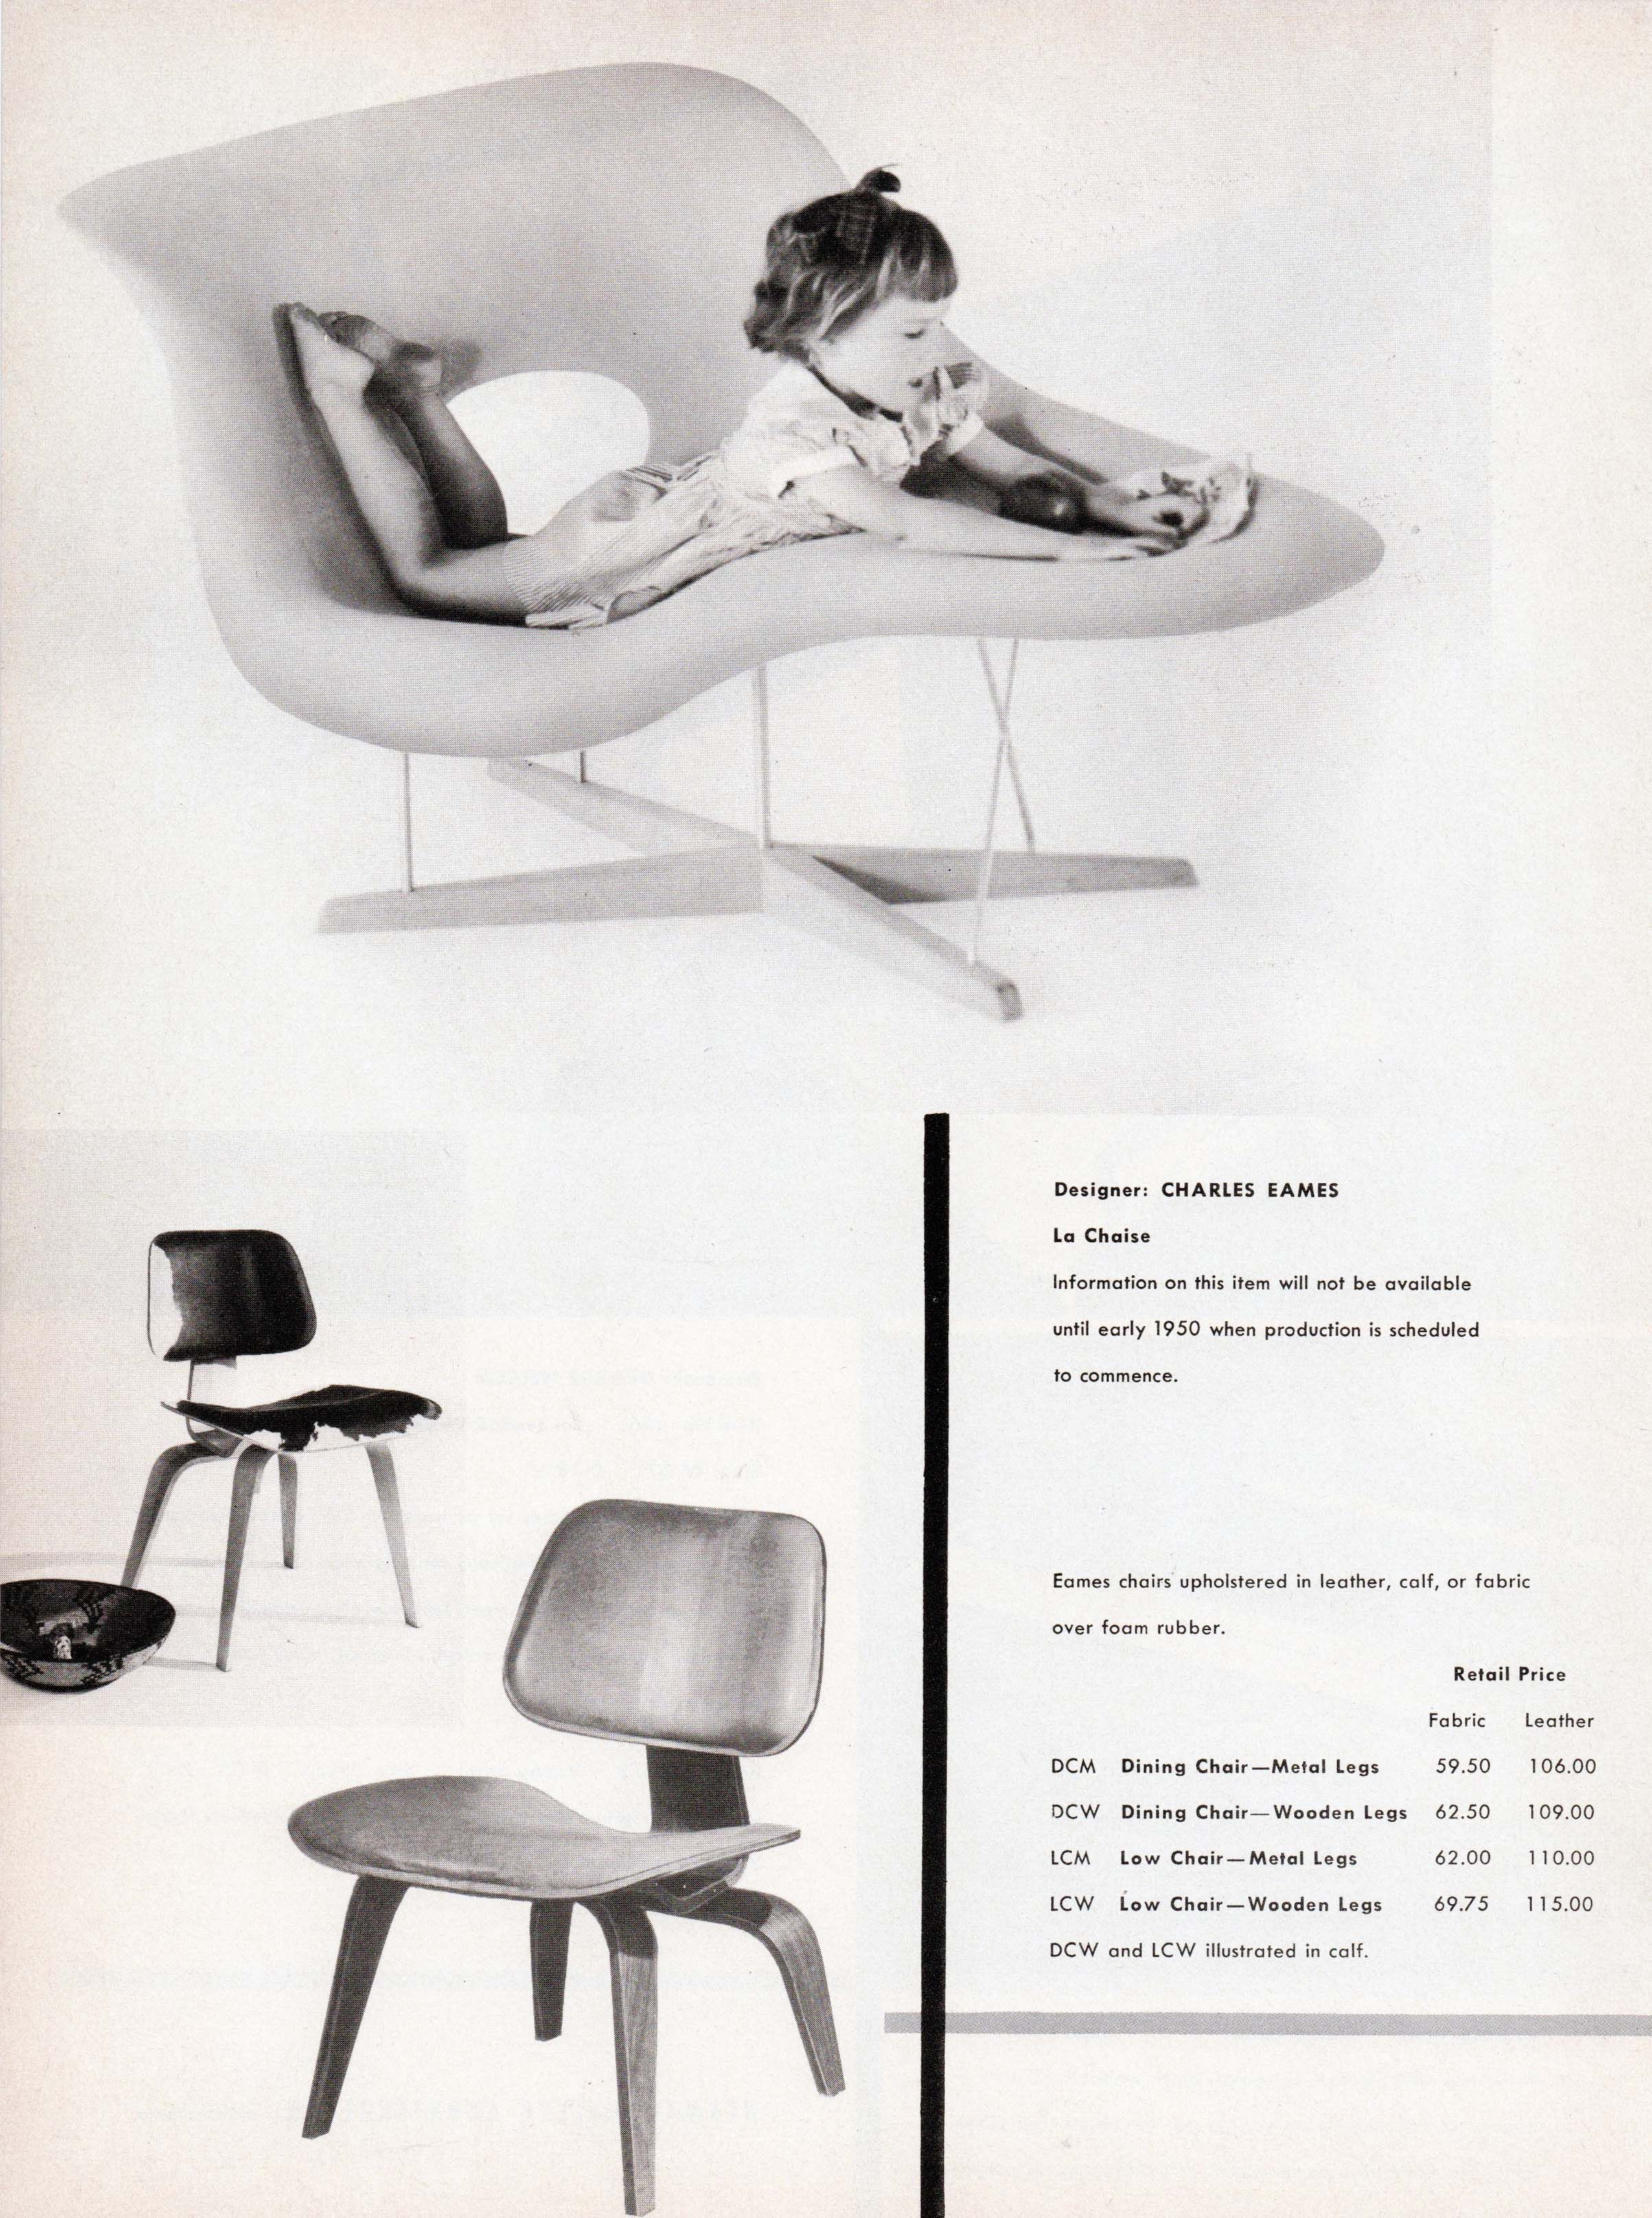 The first appearance of the #Eames LA CHAISE in Furniture